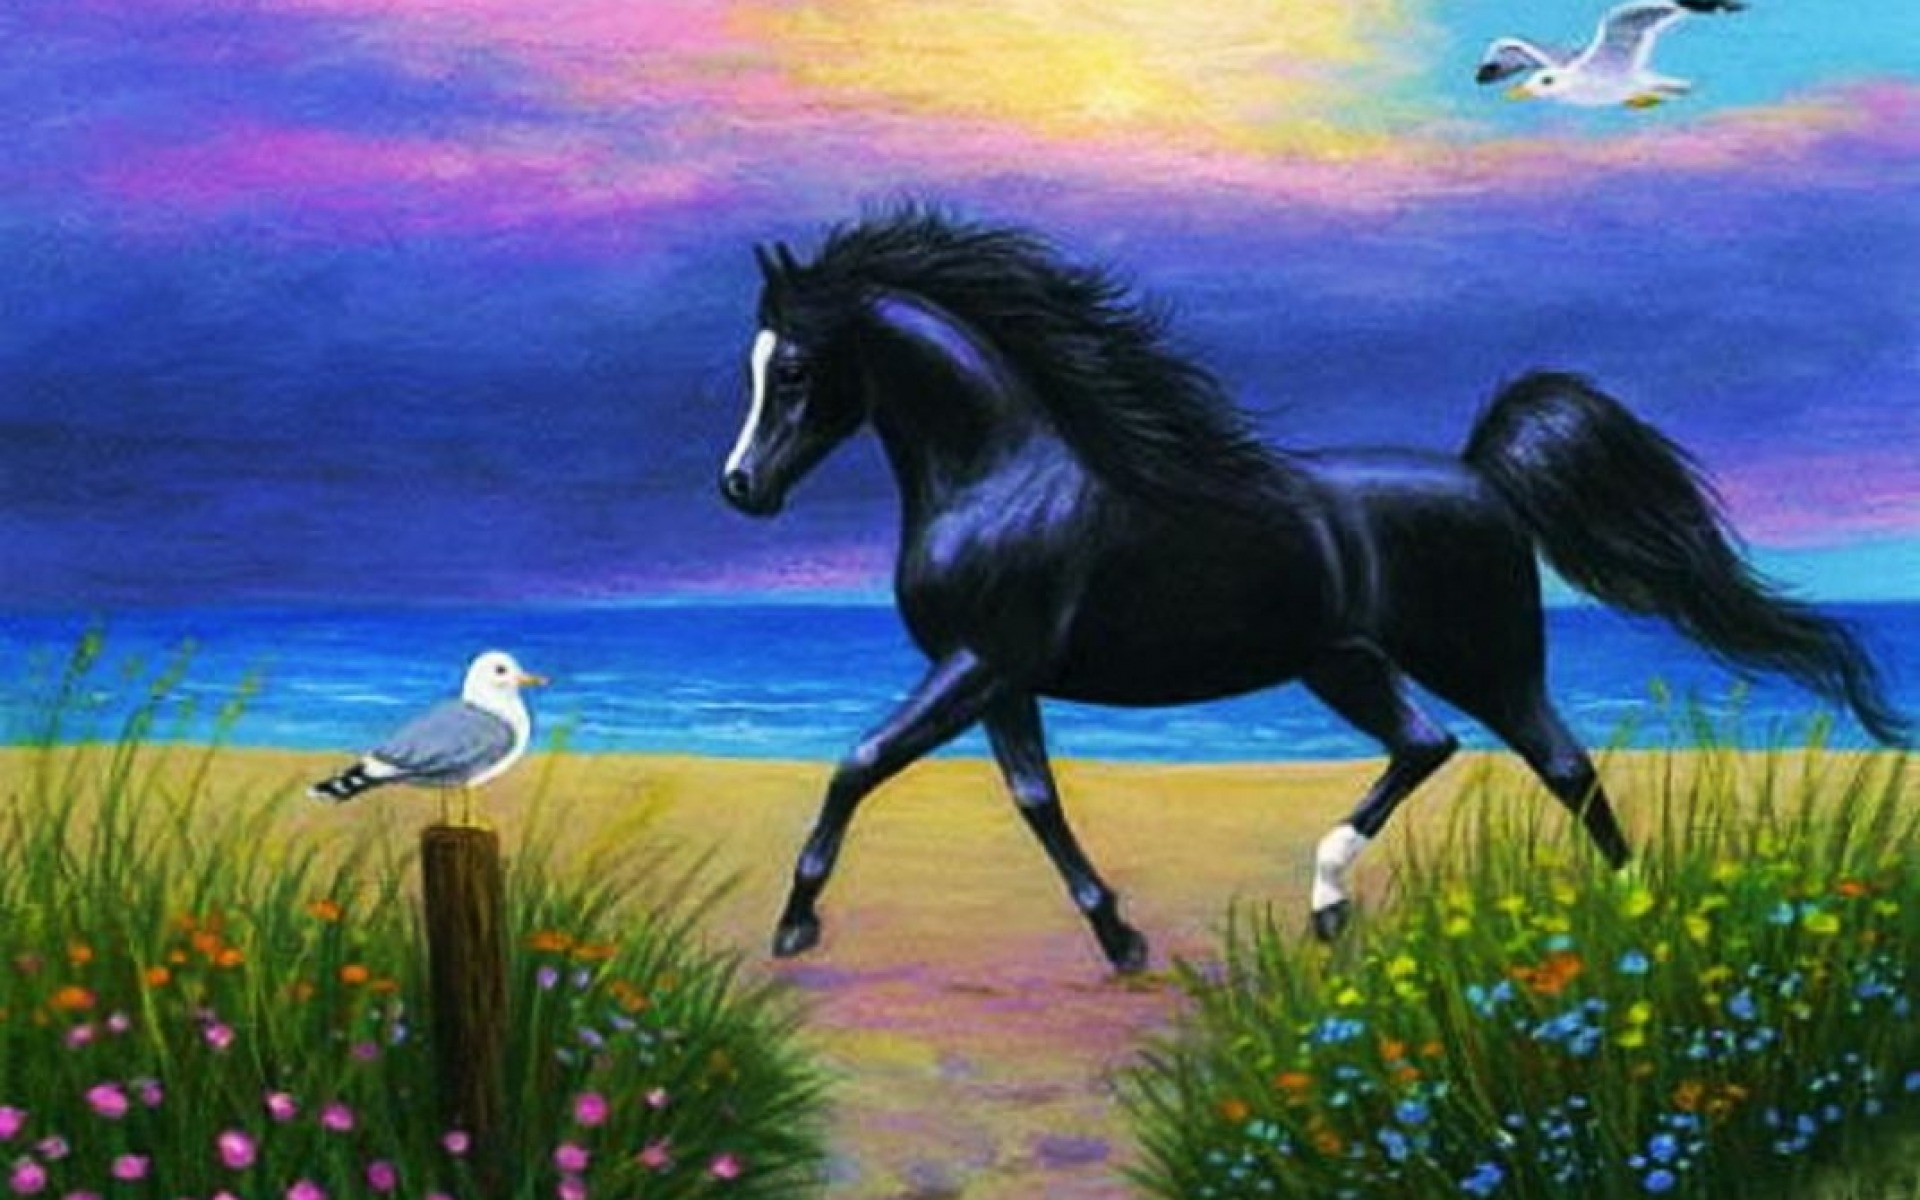 Image Ocean Beach Black Horse Birds Wallpapers And Stock Photos